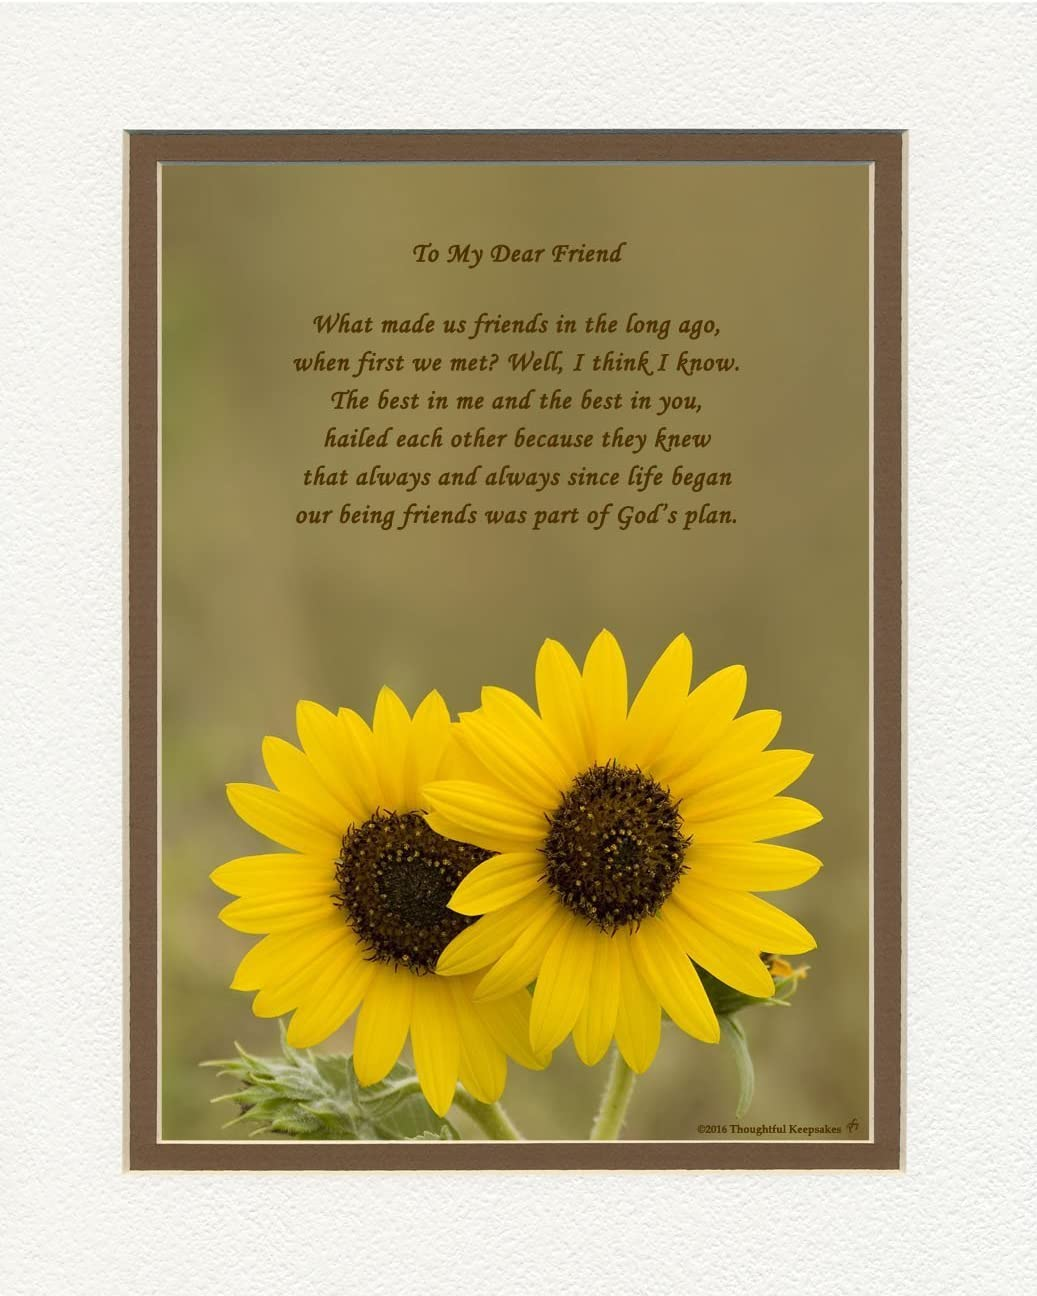 Amazon Com Friend Gifts Special Sunflowers Photo With What Made Us Friends Poem 8x10 Double Matted Great Friendship Gift For Birthday Or Christmas Posters Prints